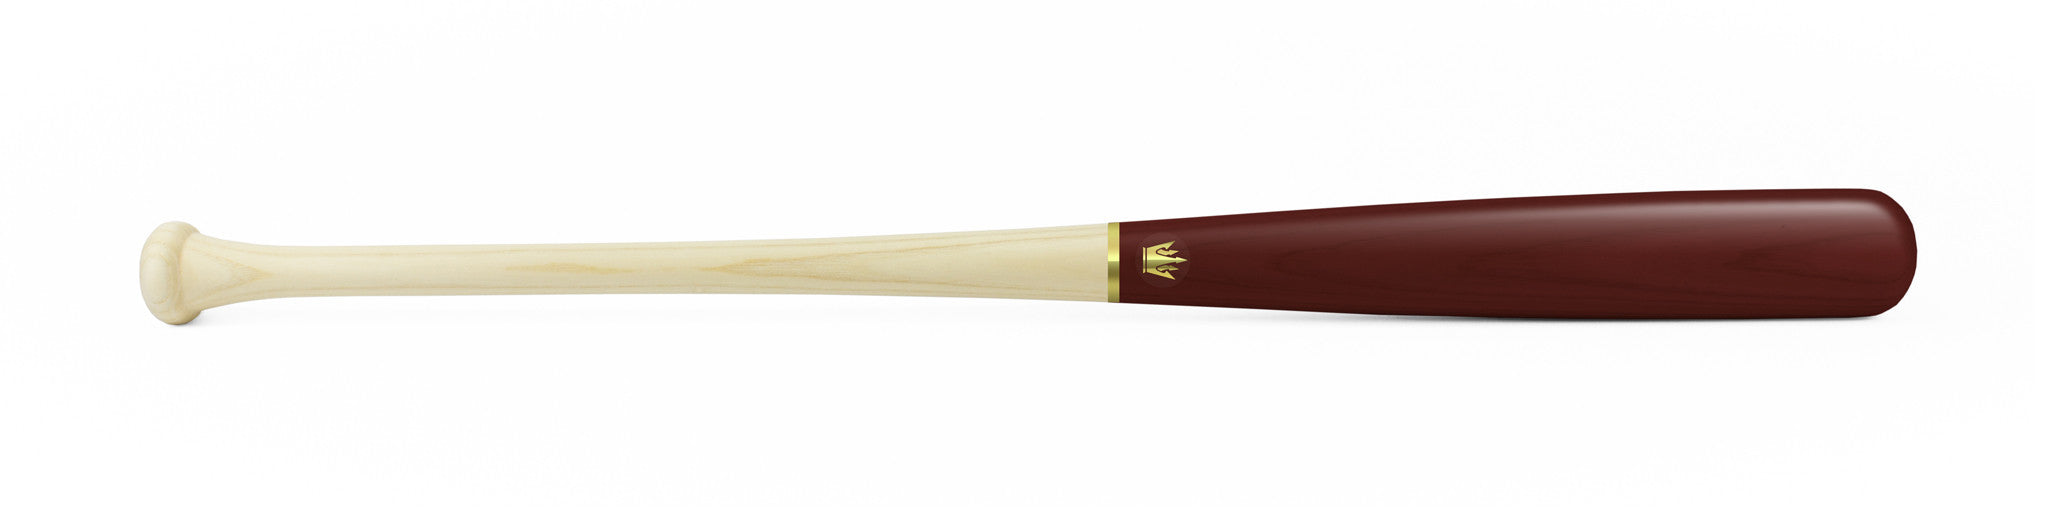 Wood bat - Ash model 110 Mahogany Standard - 25